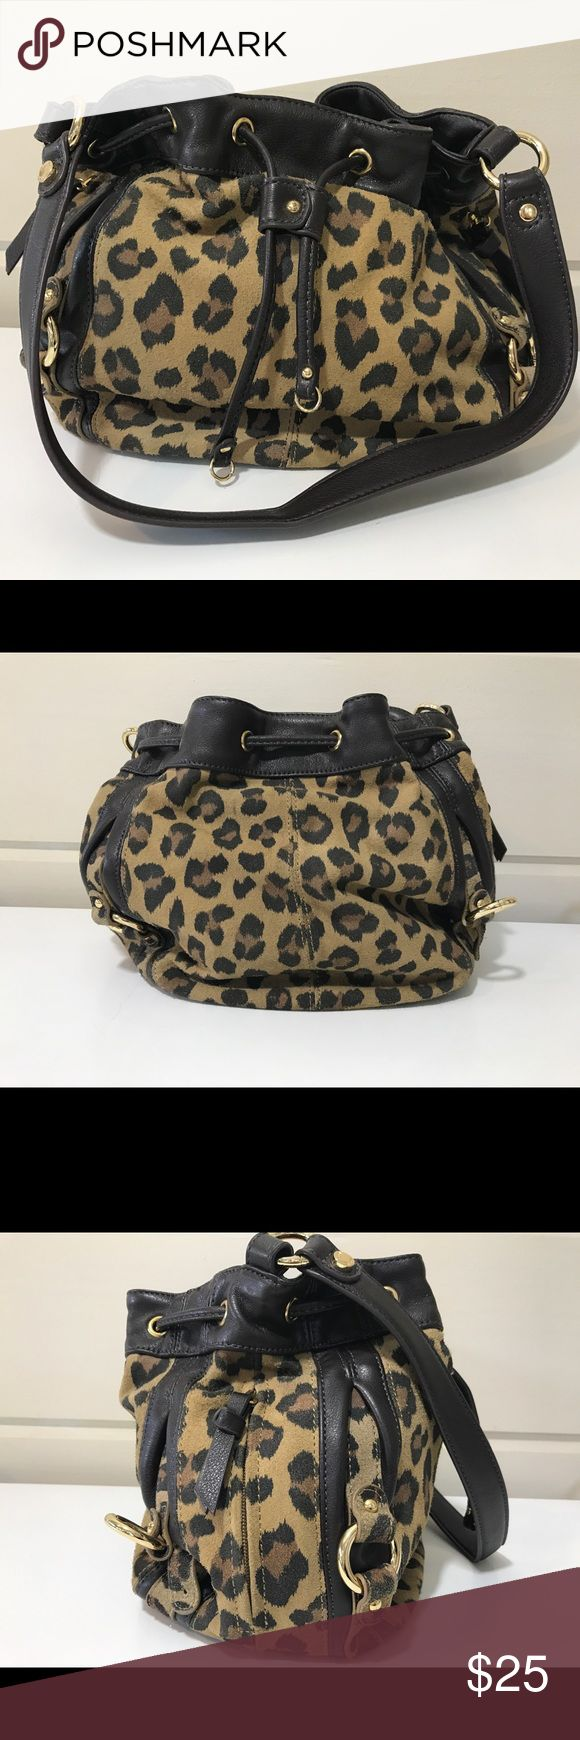 TIGNANELLO SUEDE LEOPARD PRINT BUCKLE BAG TIGNANELLO SUEDE LEOPARD PRINT BUCKLE BAG WITH GORGEOUS GOLD ACCENTS❤️ BAG IS IN EXCELLENT CONDITION PLEASE SEE 4TH PIC IT IS  MISSING 1 SMALL GOLD ACCENT DOES NOT EFFECT THE FUNCTION OF THE BAG AND IS NOT NOTICEABLE PRICE REFLECTS THIS OTHER THAN THAT THE INSIDE AND OUTSIDE IS IN GREAT CONDITION ONLY USED 2 TIMES ! Tinganello Bags Satchels